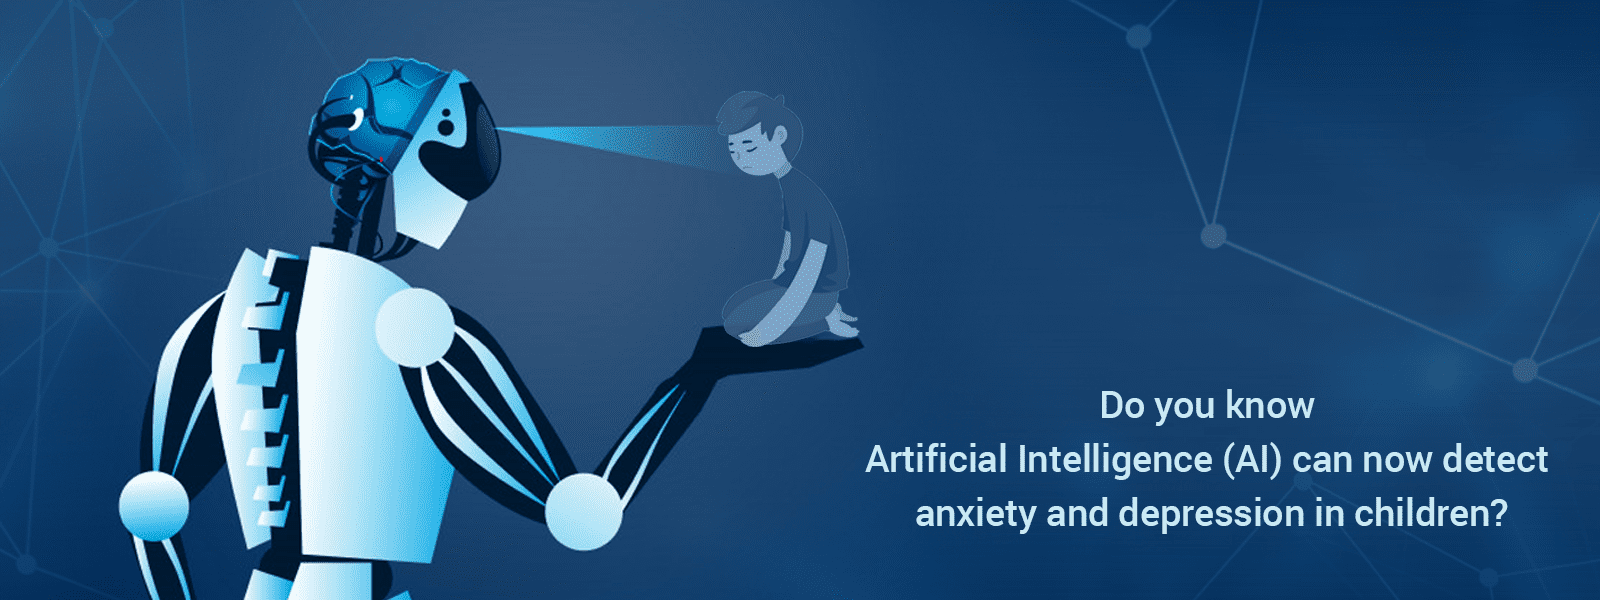 Do you know Artificial Intelligence (AI) can now detect anxiety and depression in children?